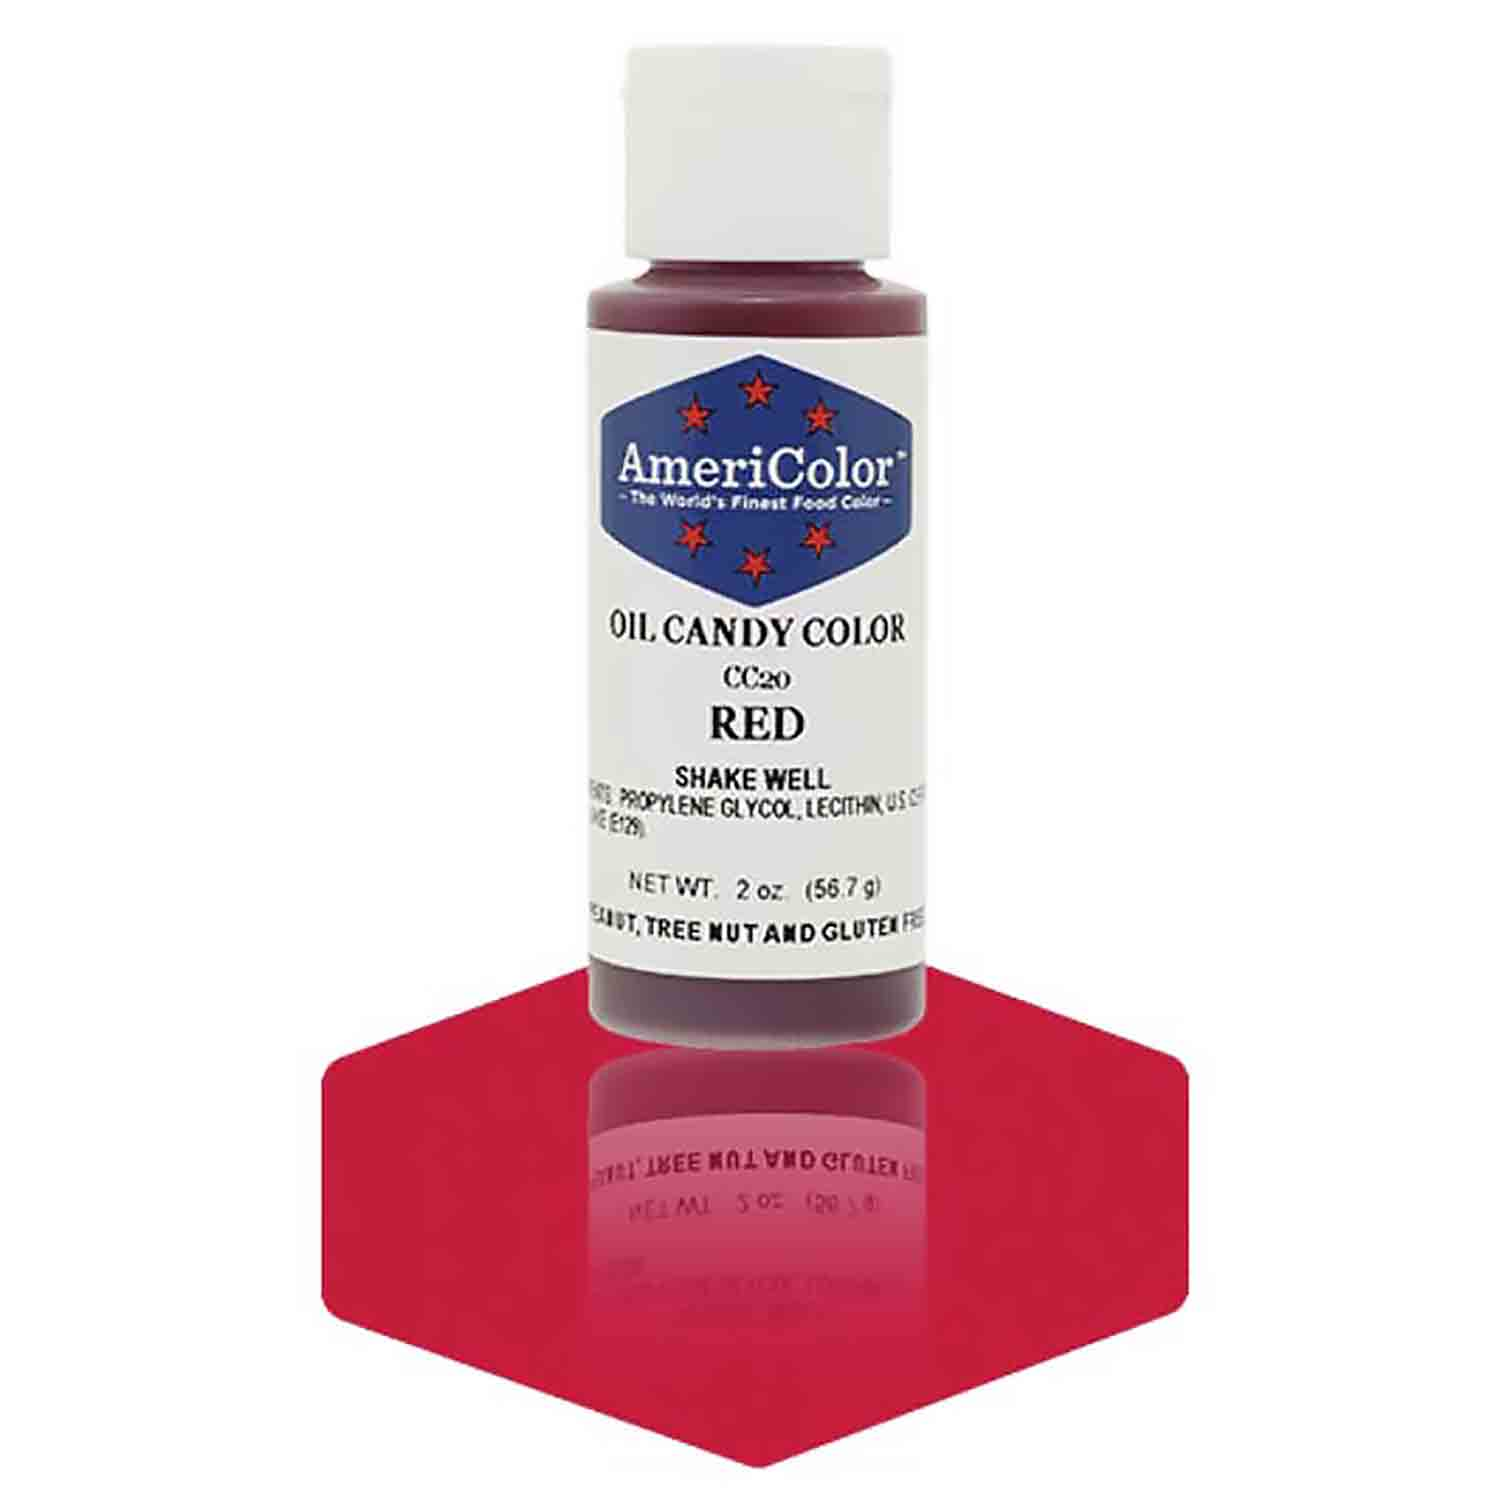 Red AmeriColor® Oil Candy Color